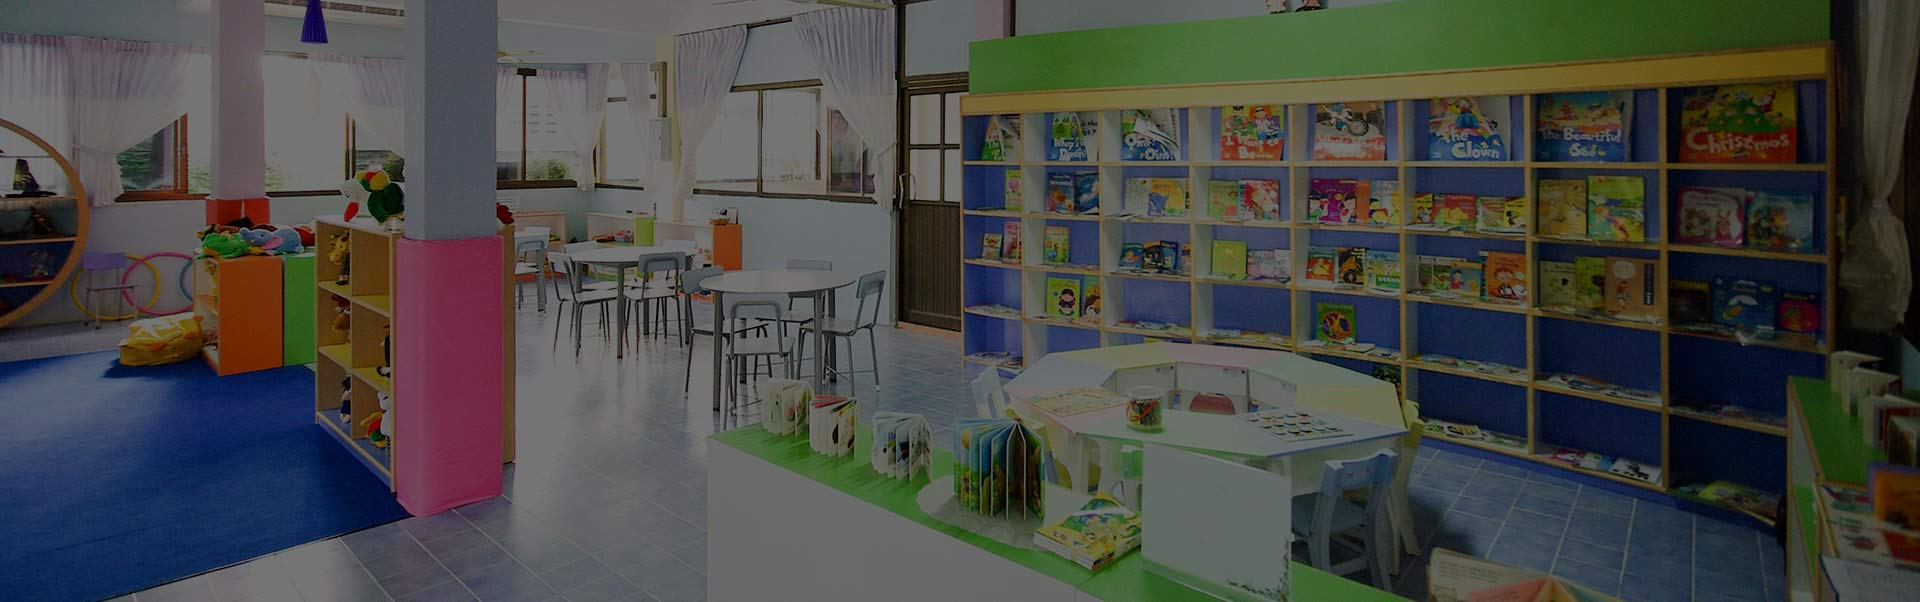 review feedback tools for child care facilities